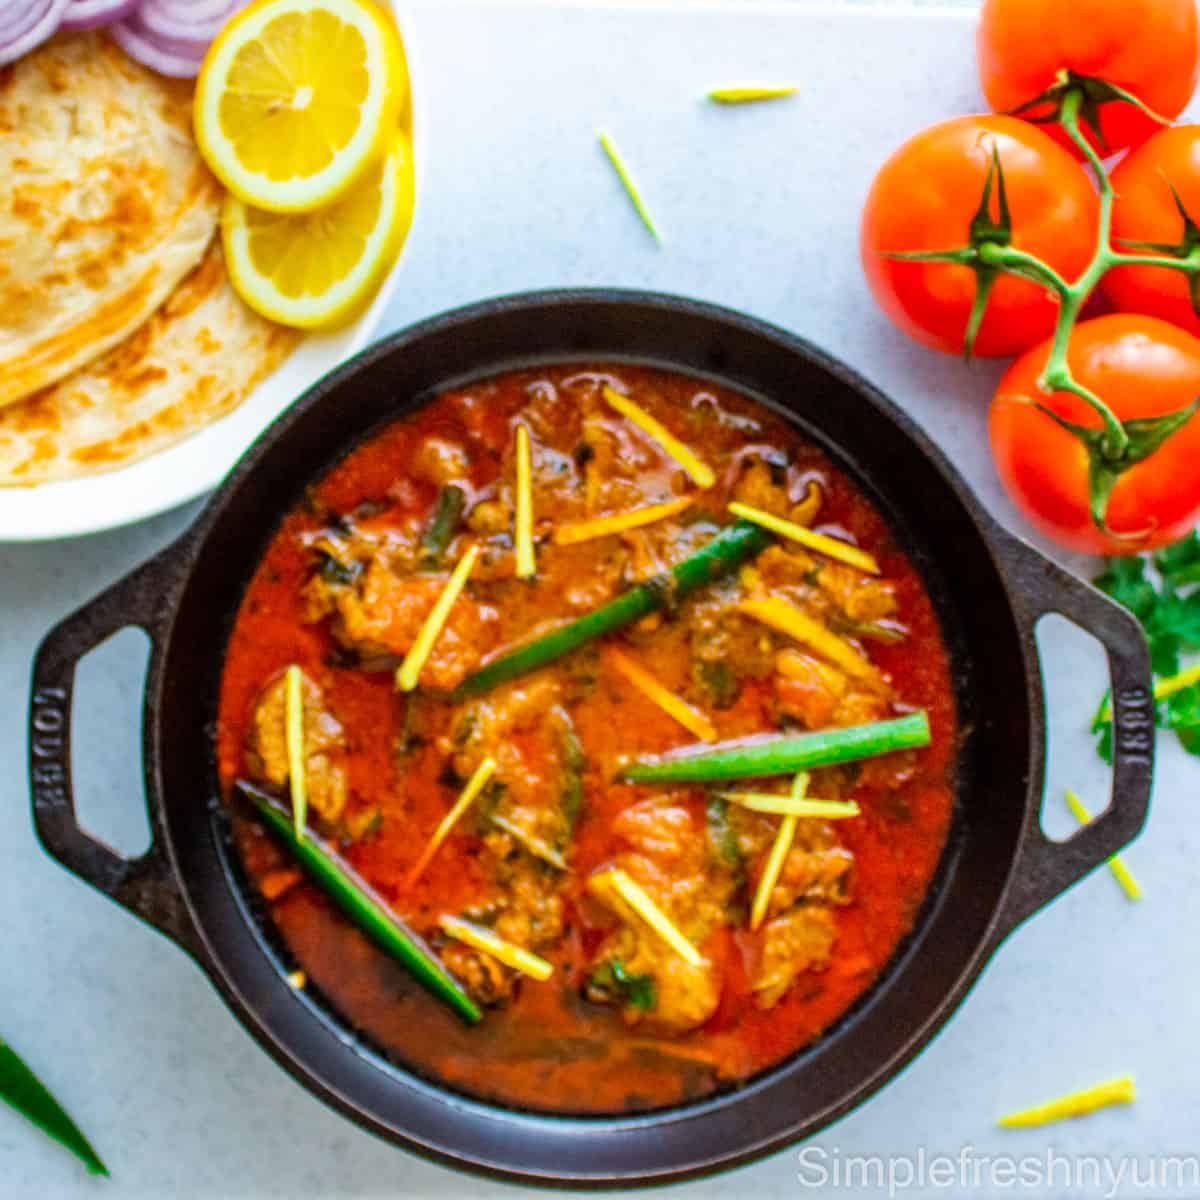 Chicken Karahi in a black cast Iron Wok garnished with thinly sliced jalapenos and ginger juliennes. There are some vine tomatoes on the side and a white plate of paratha with lemon slices on the other side.